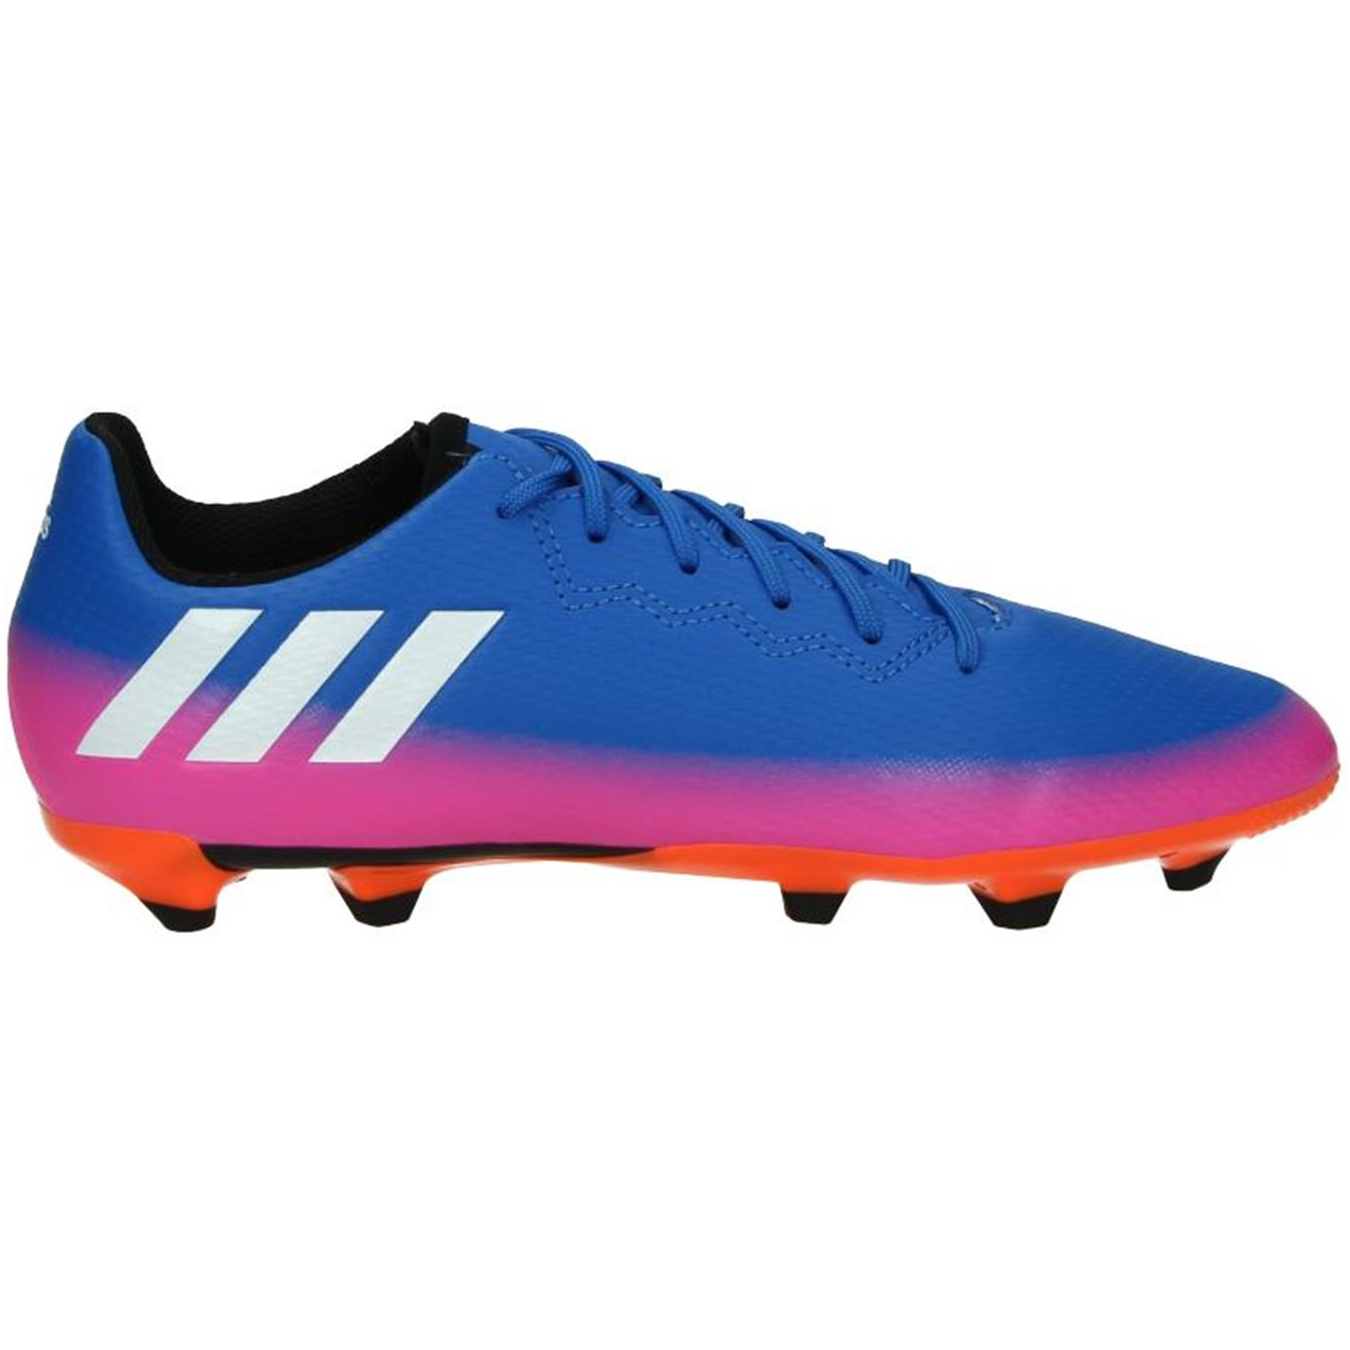 size 40 32e25 a5108 Adidas Messi 16.3 FG J Soccer Shoes Football Boots  blue pink orange white black